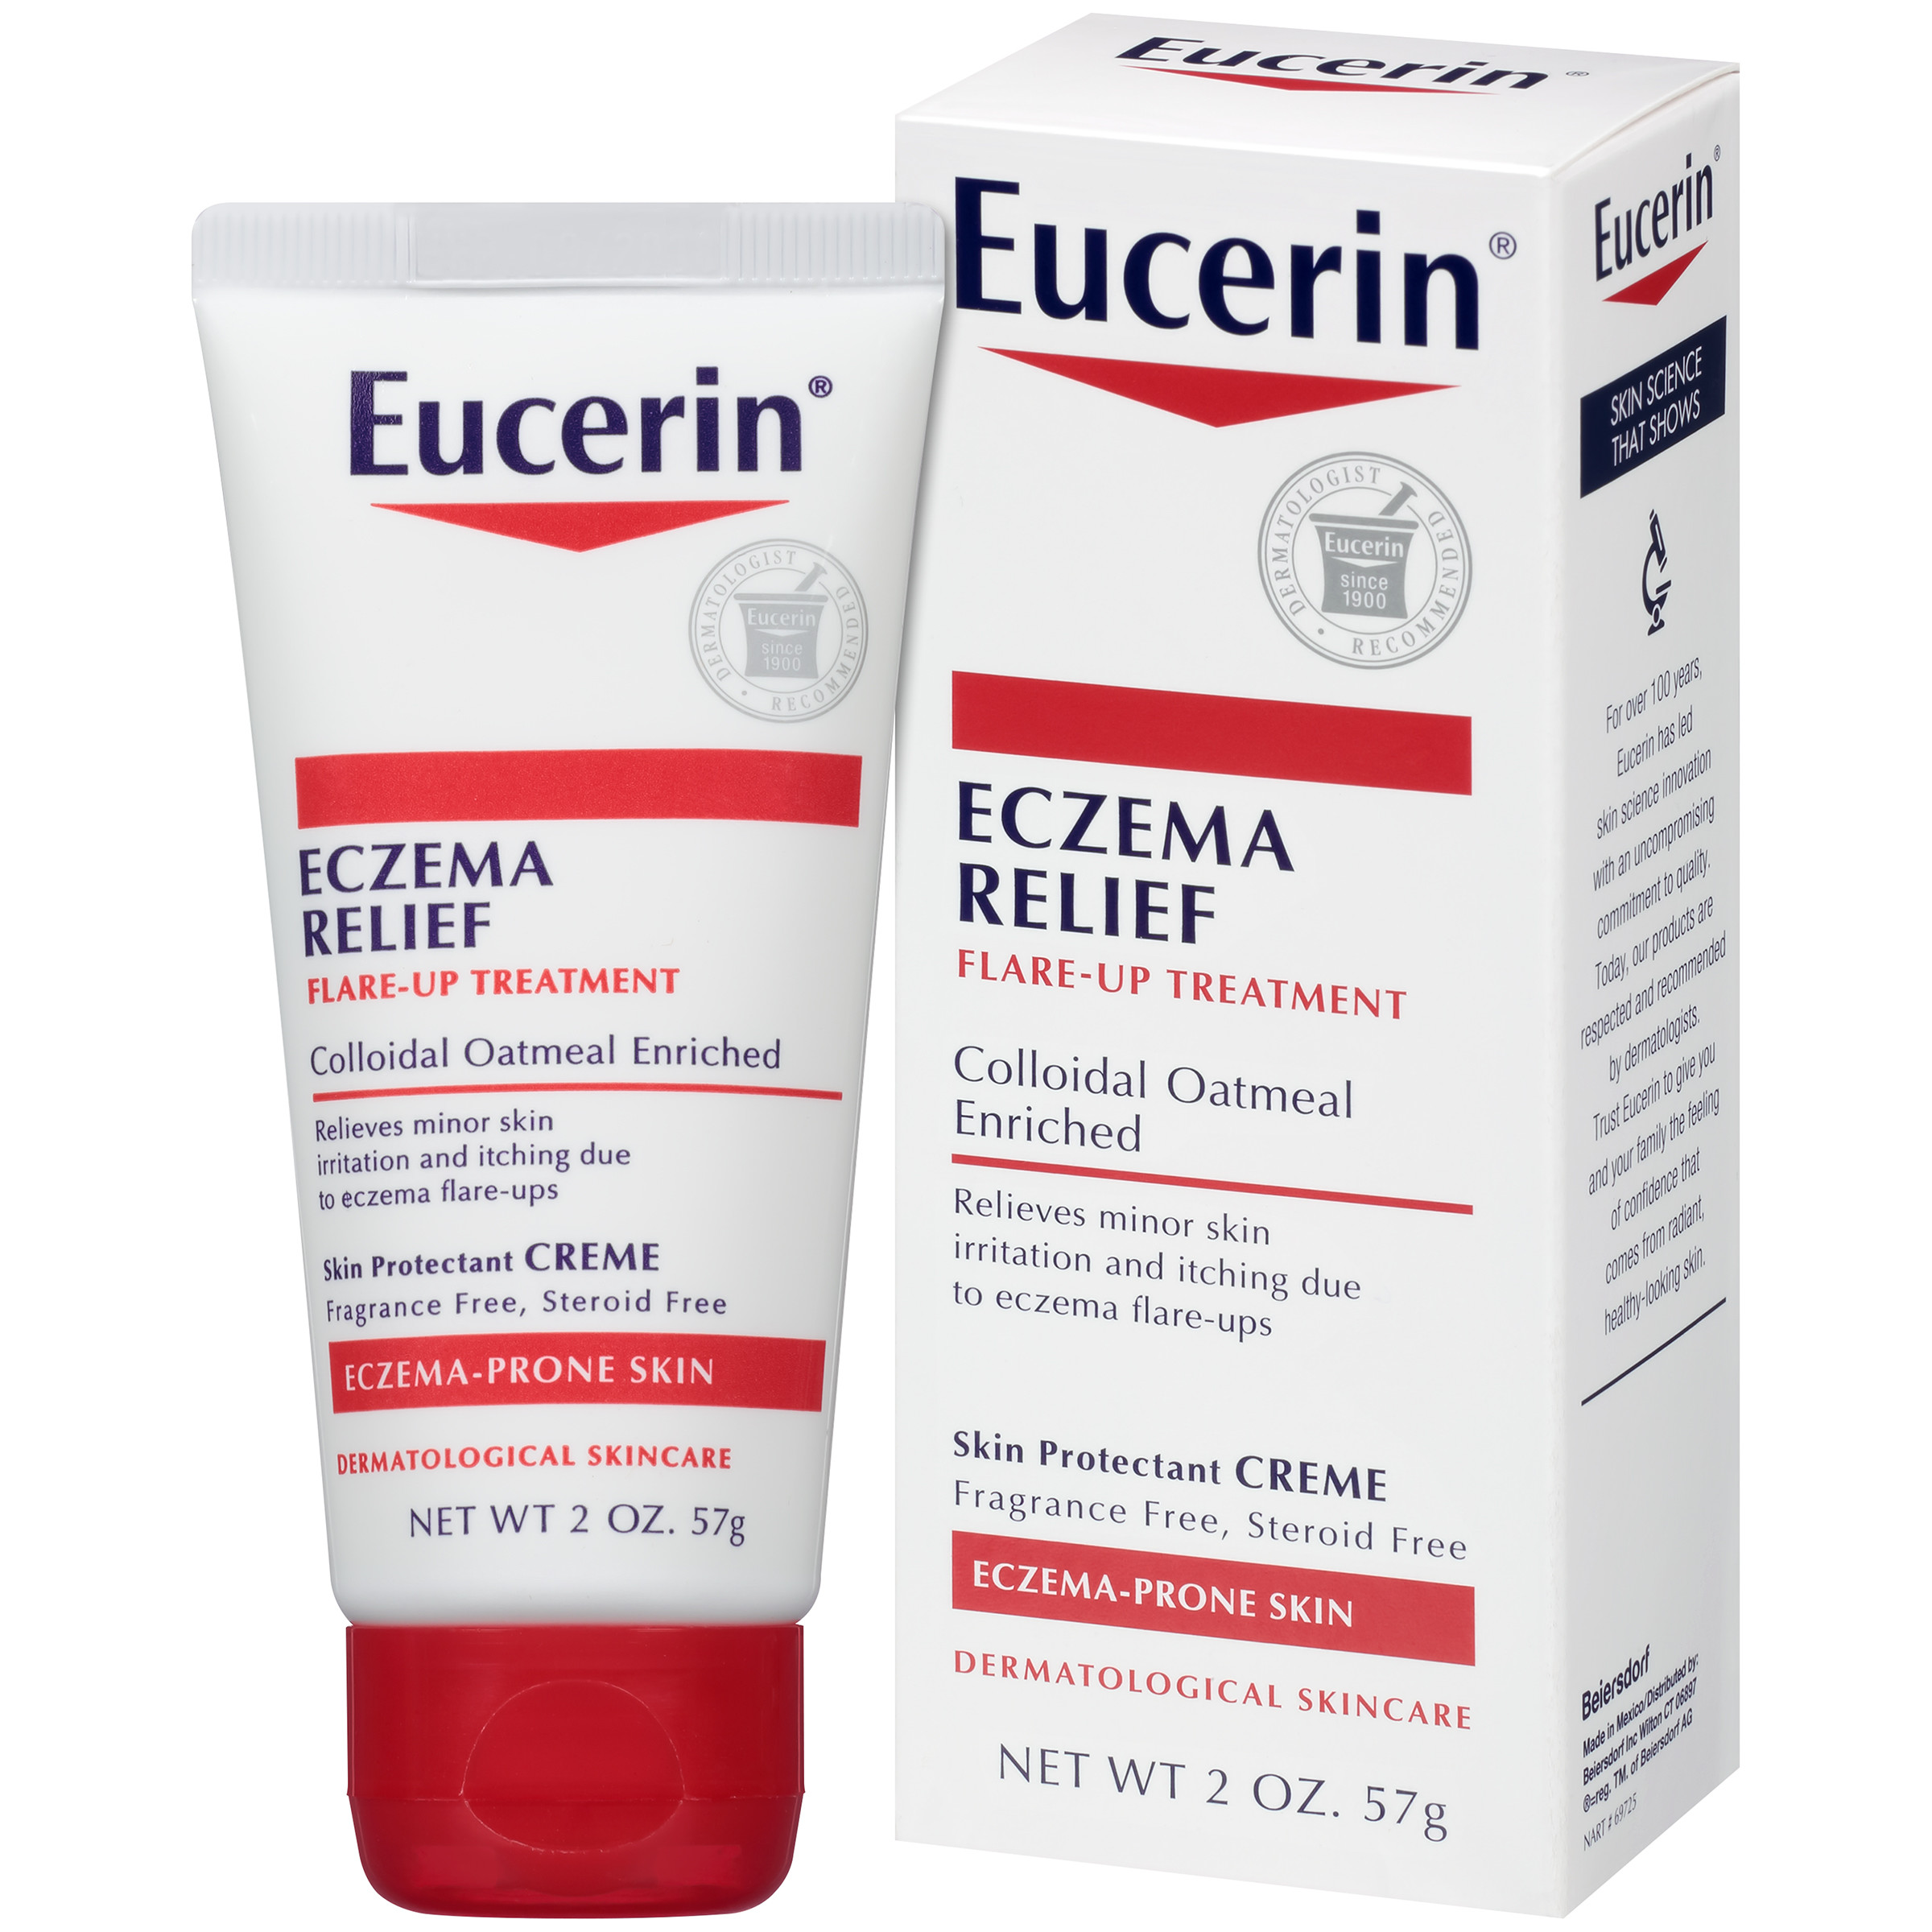 Eucerin Eczema Relief Flare-Up Treatment 2 oz.